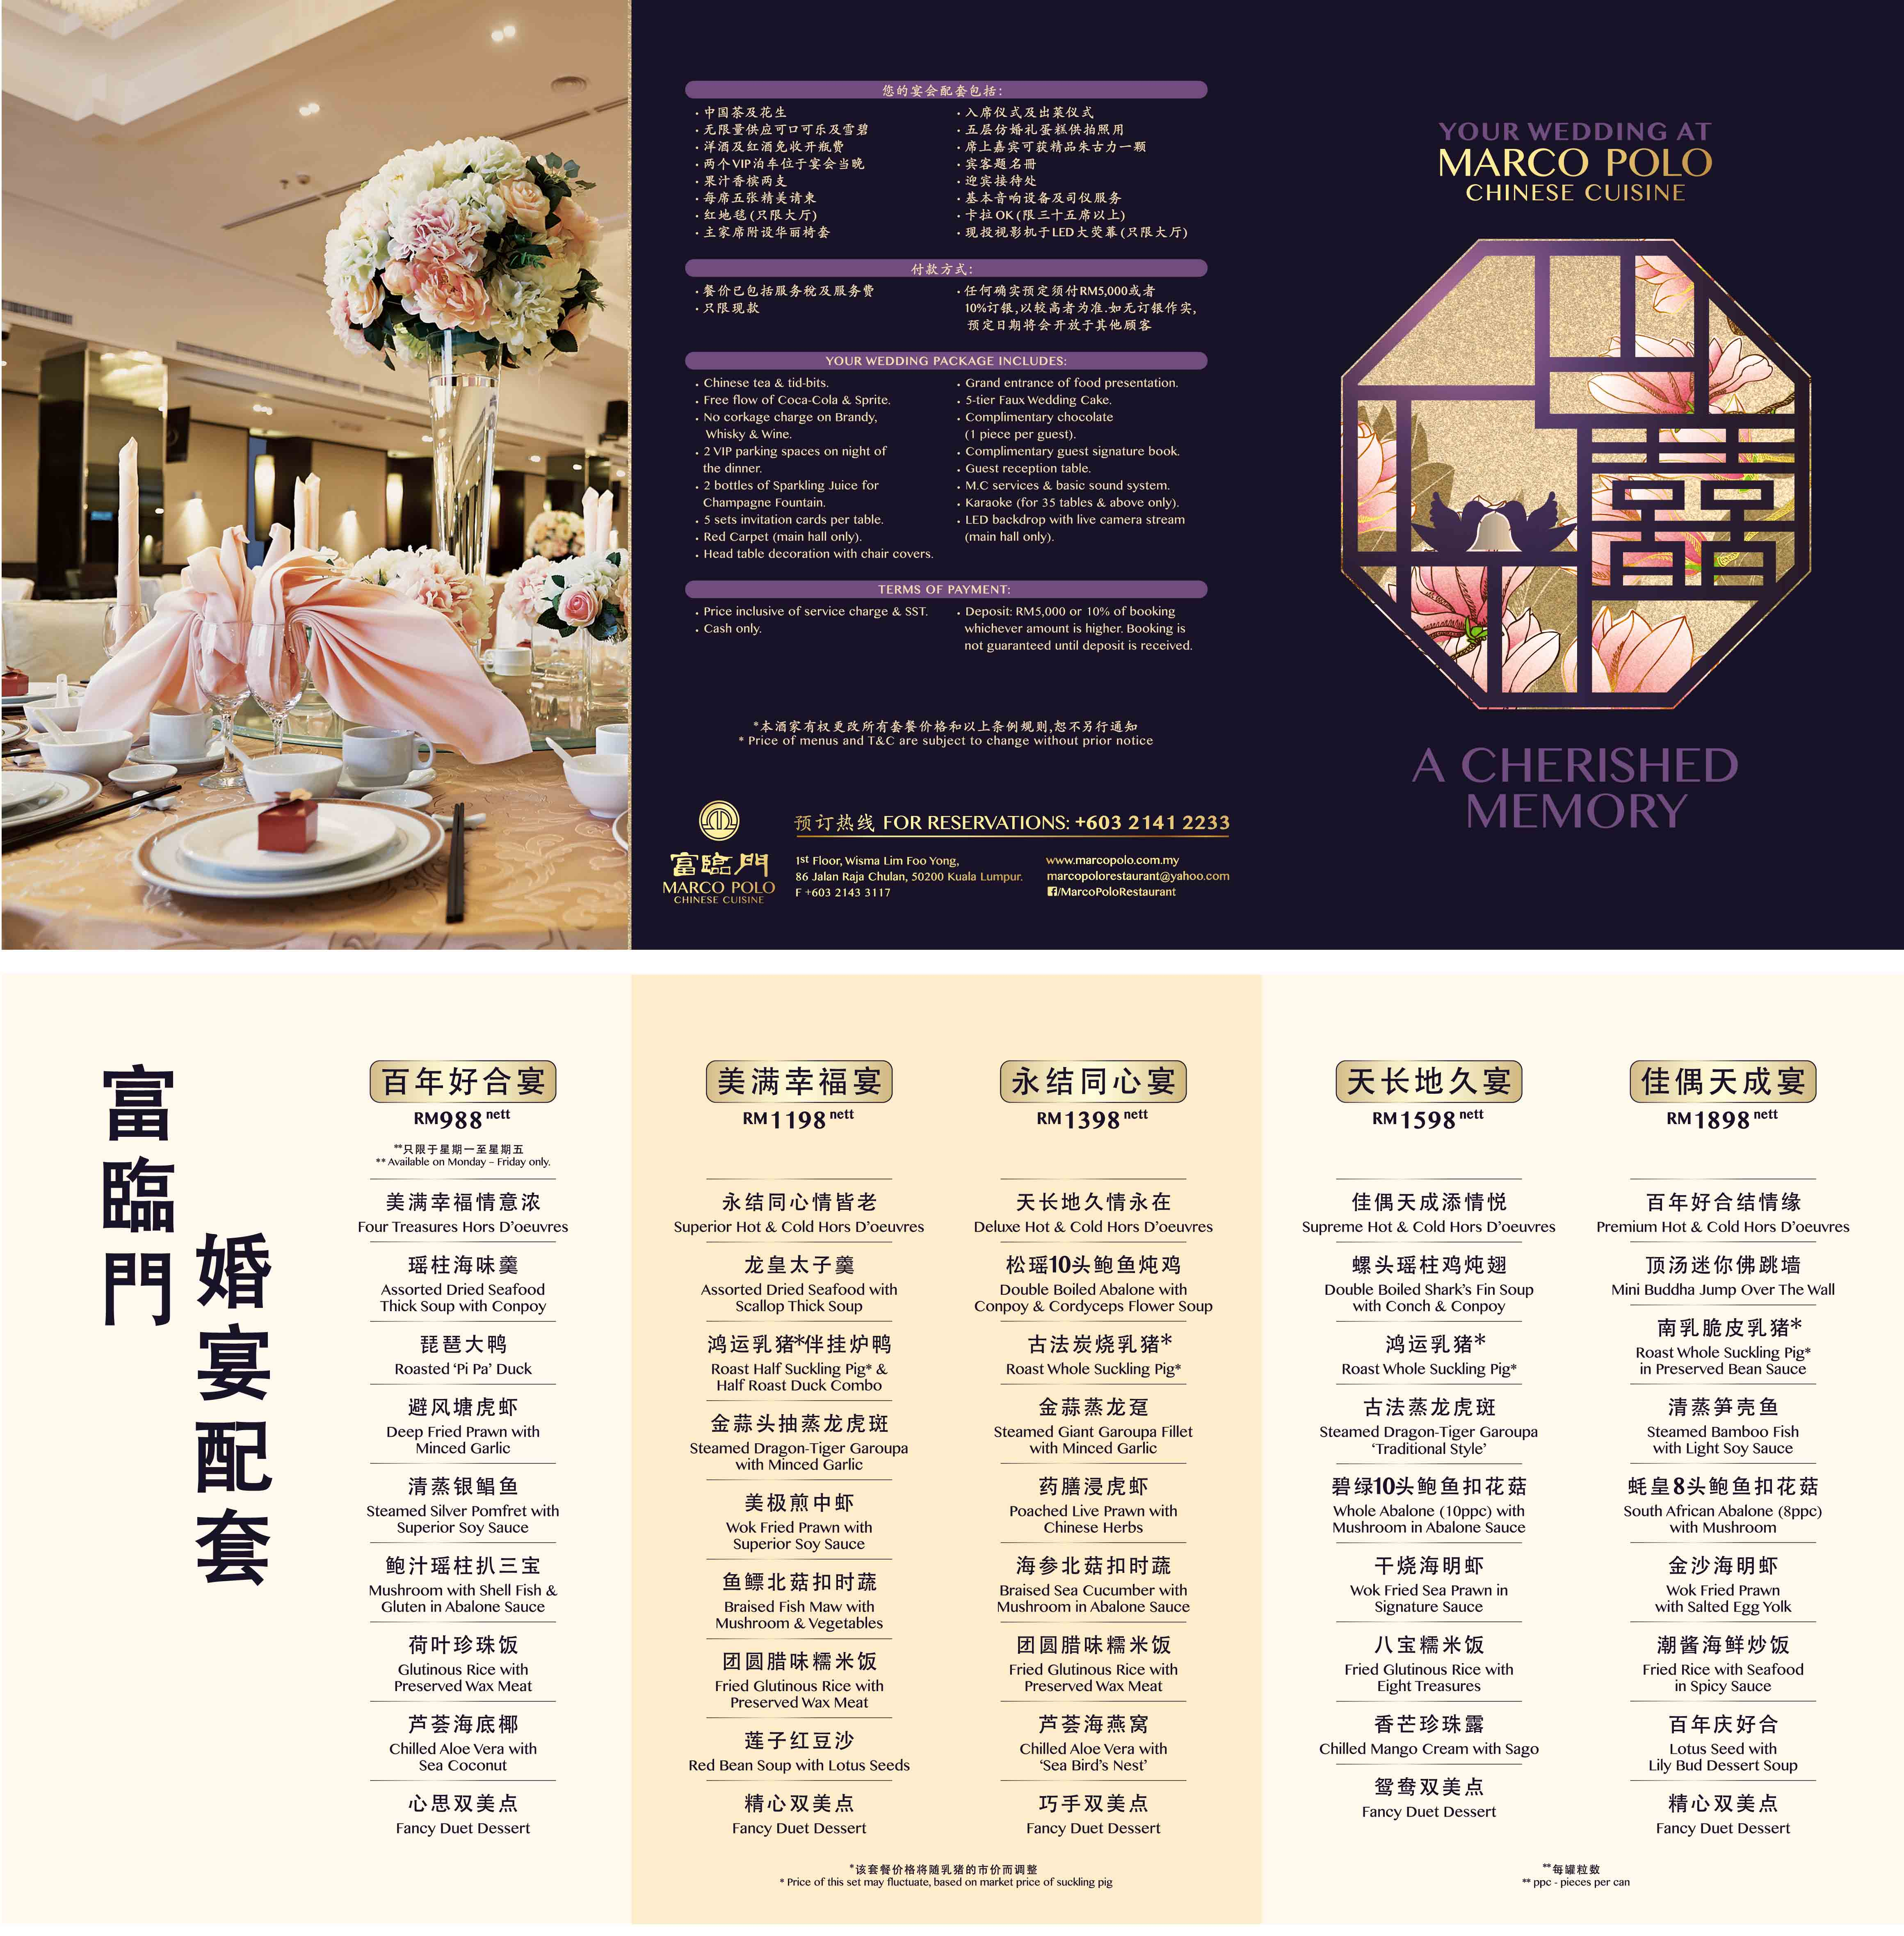 Chinese Wedding Food Menu: Authentic Chinese Cuisine